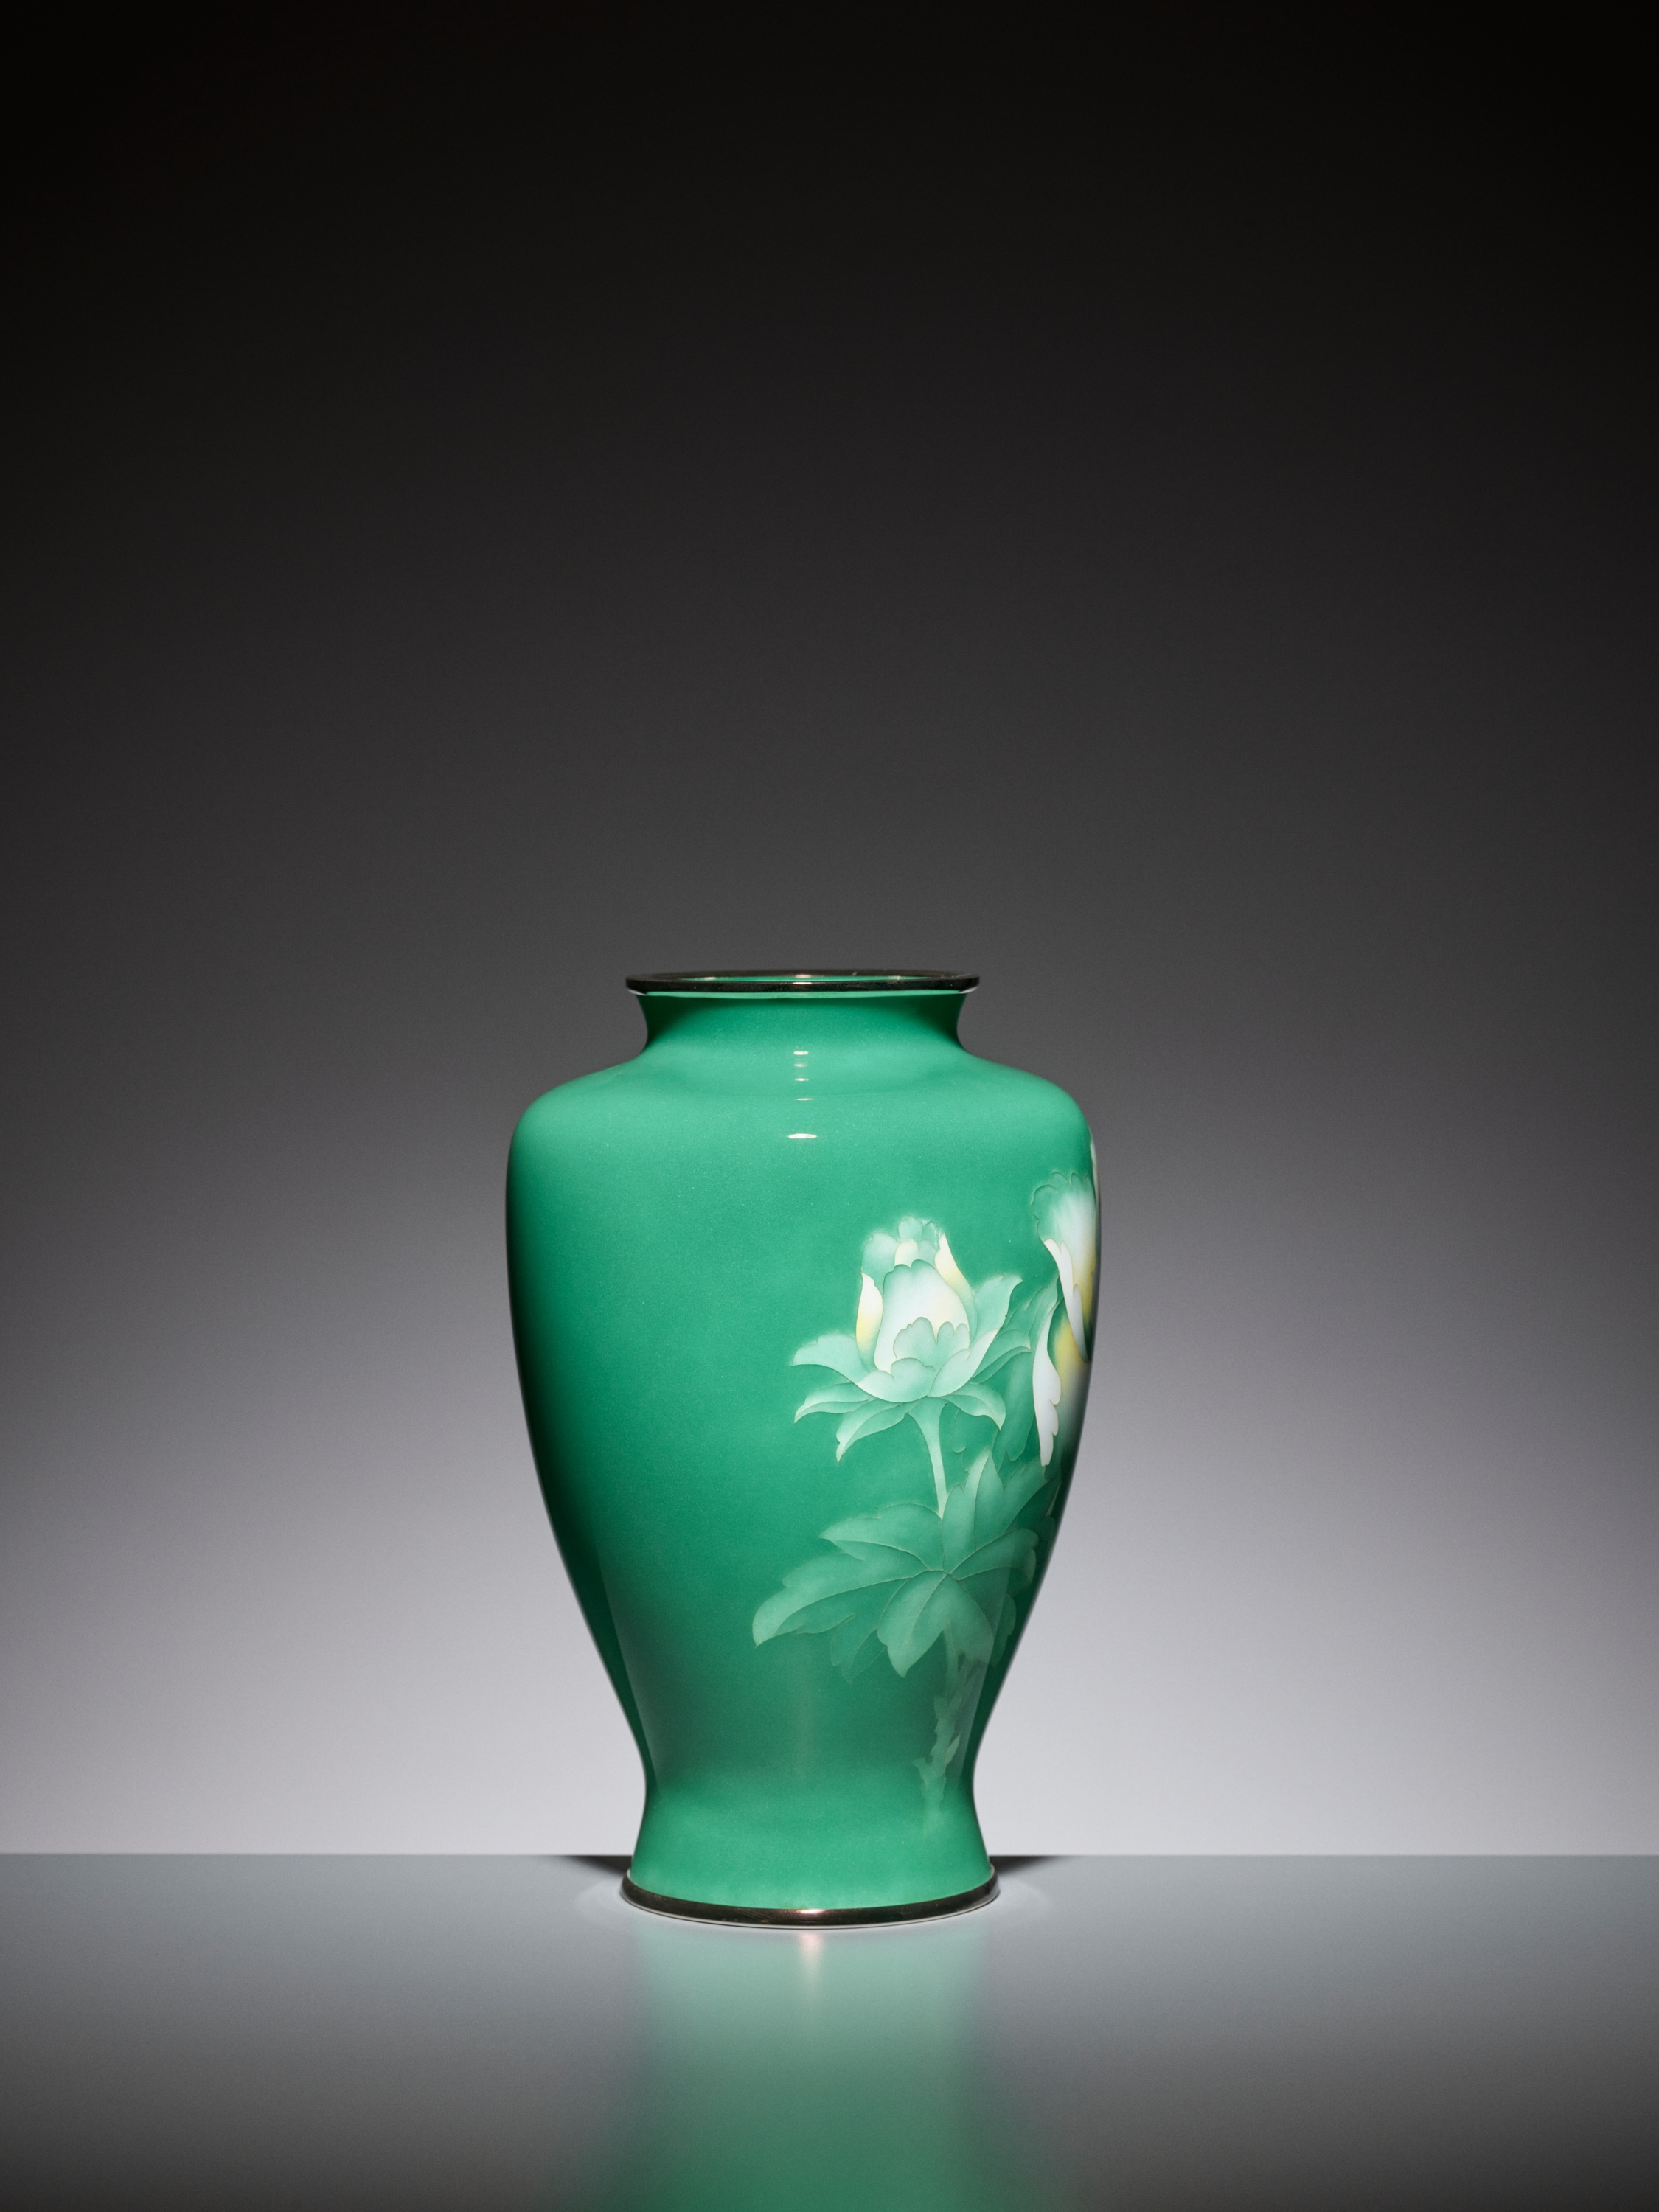 AN EMERALD GREEN CLOISONNE ENAMEL VASE WITH PEONY, ATTRIBUTED TO THE WORKSHOP OF ANDO JUBEI - Image 4 of 6